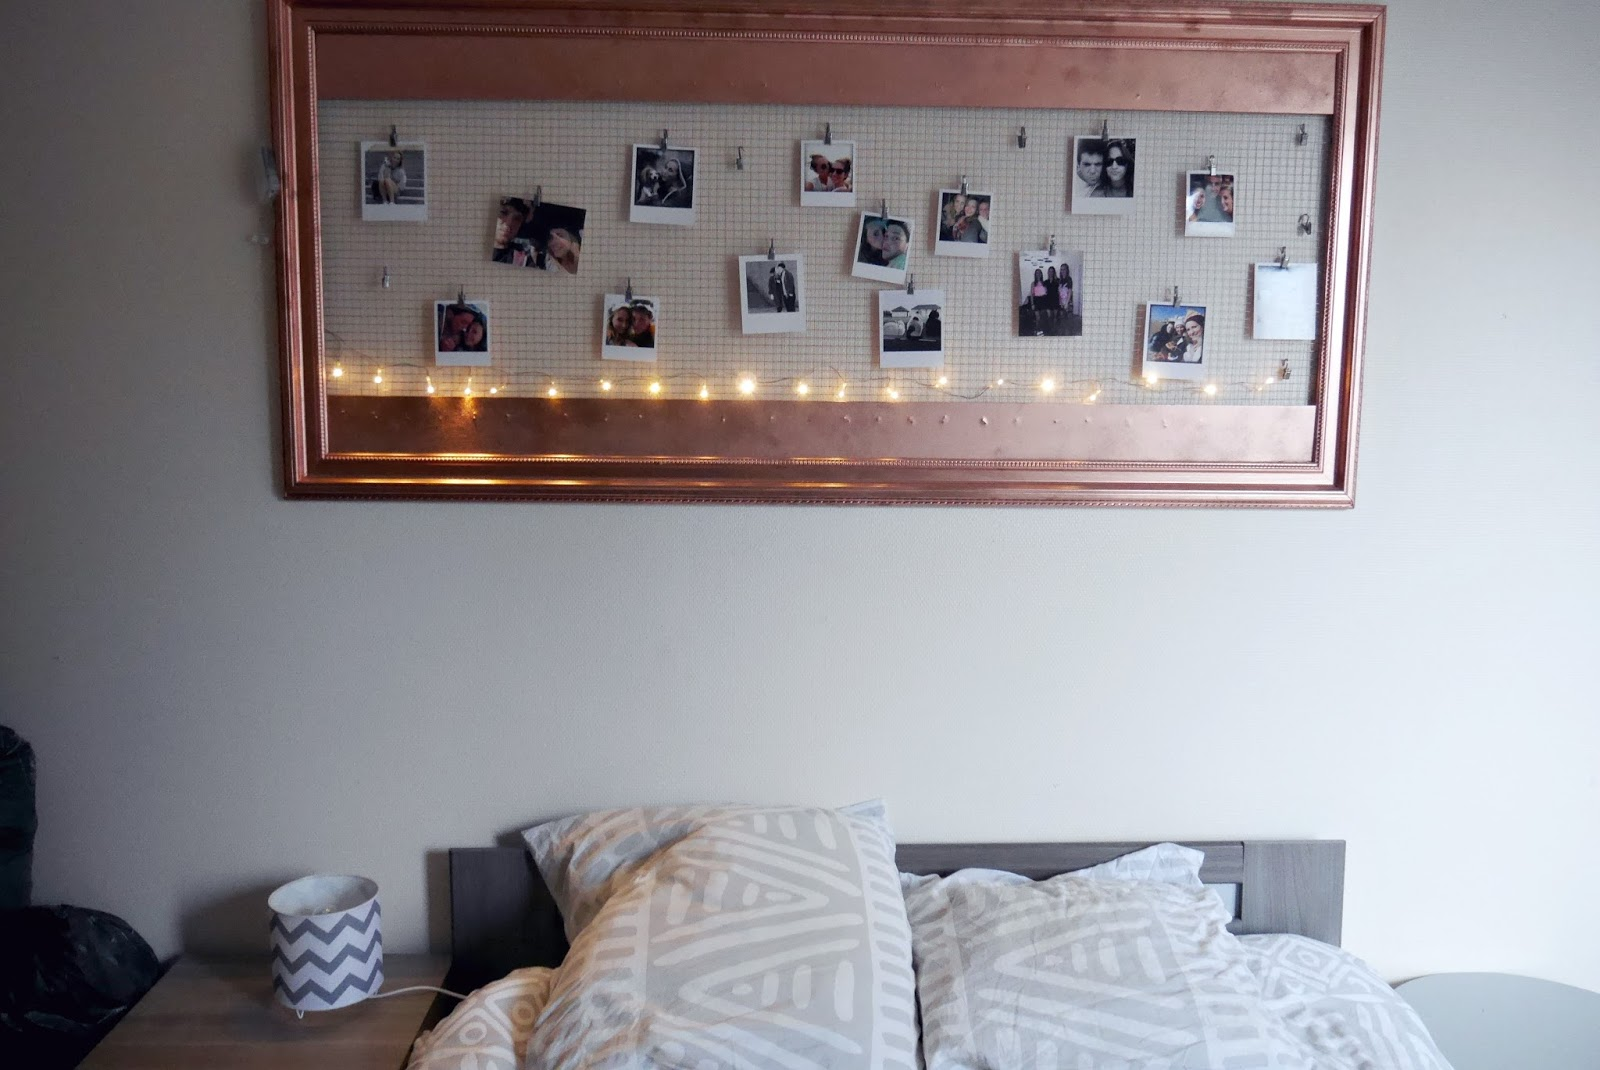 diy mon cadre photo p le m le. Black Bedroom Furniture Sets. Home Design Ideas